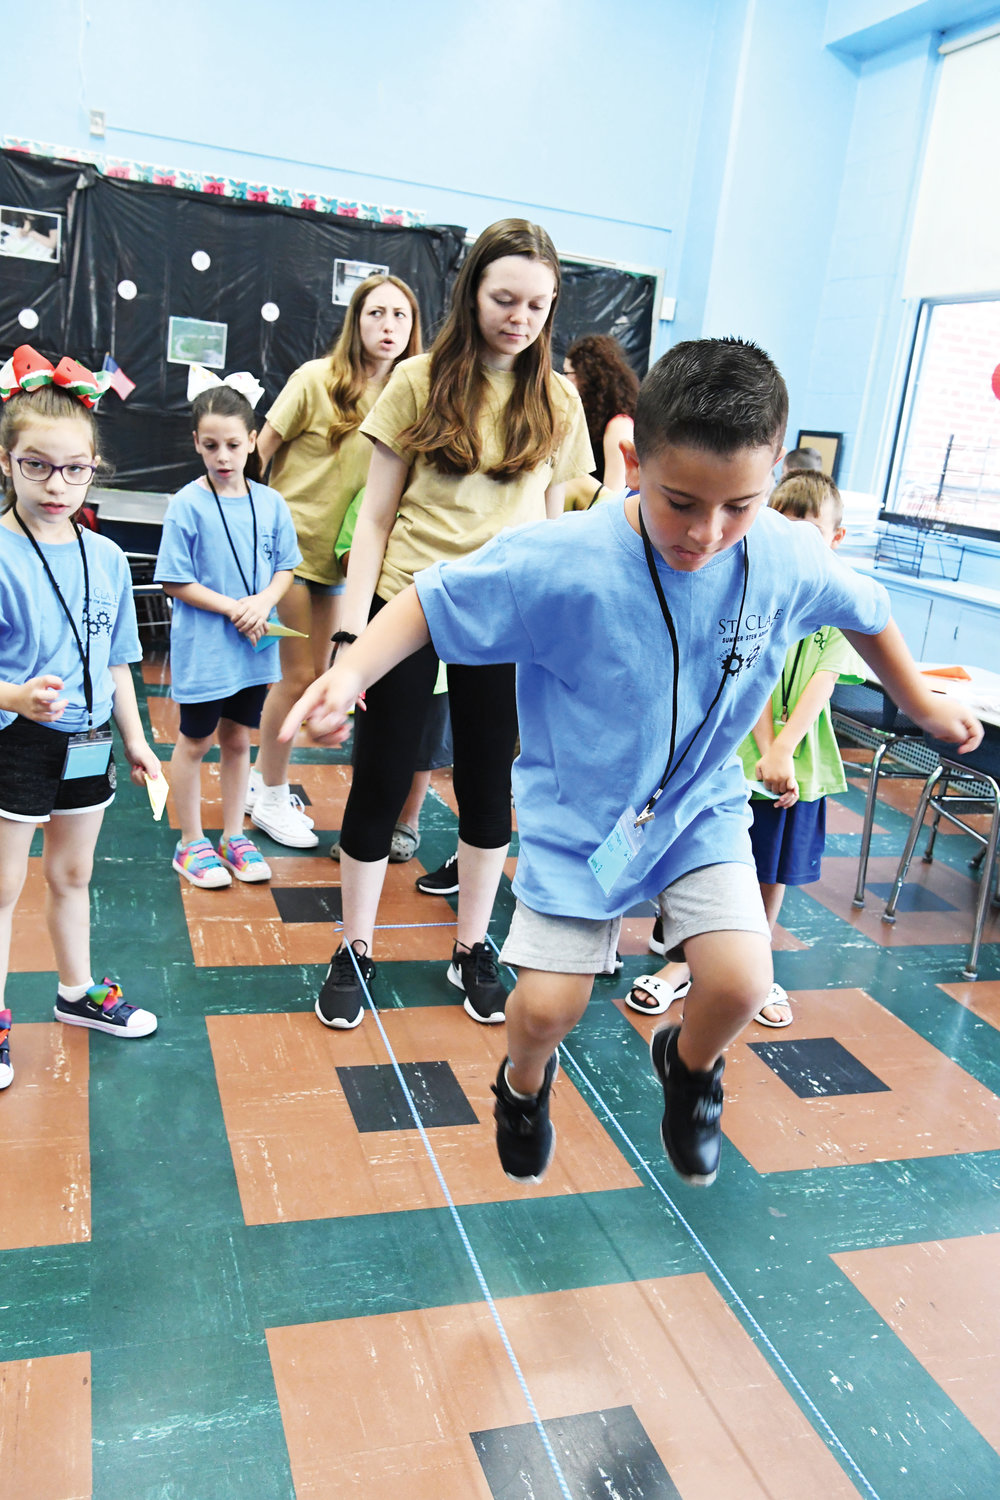 Second-grade camper Anthony Russo participates in a Chinese jump rope game, and behind him is camp counselor Bethany Werth.